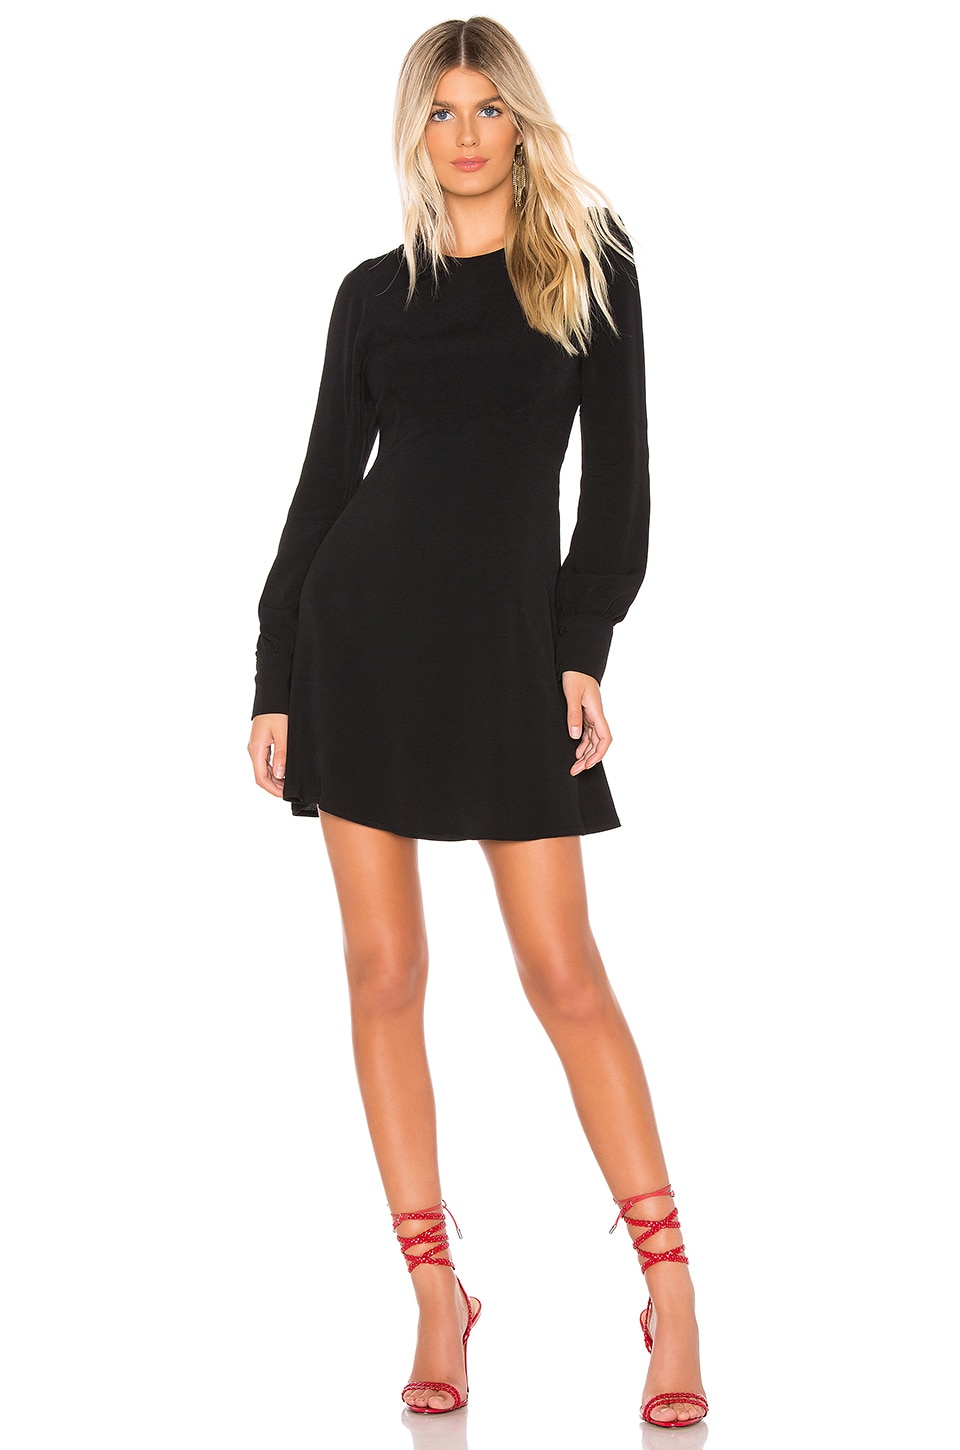 FLYNN SKYE Lydia Mini Dress in Black